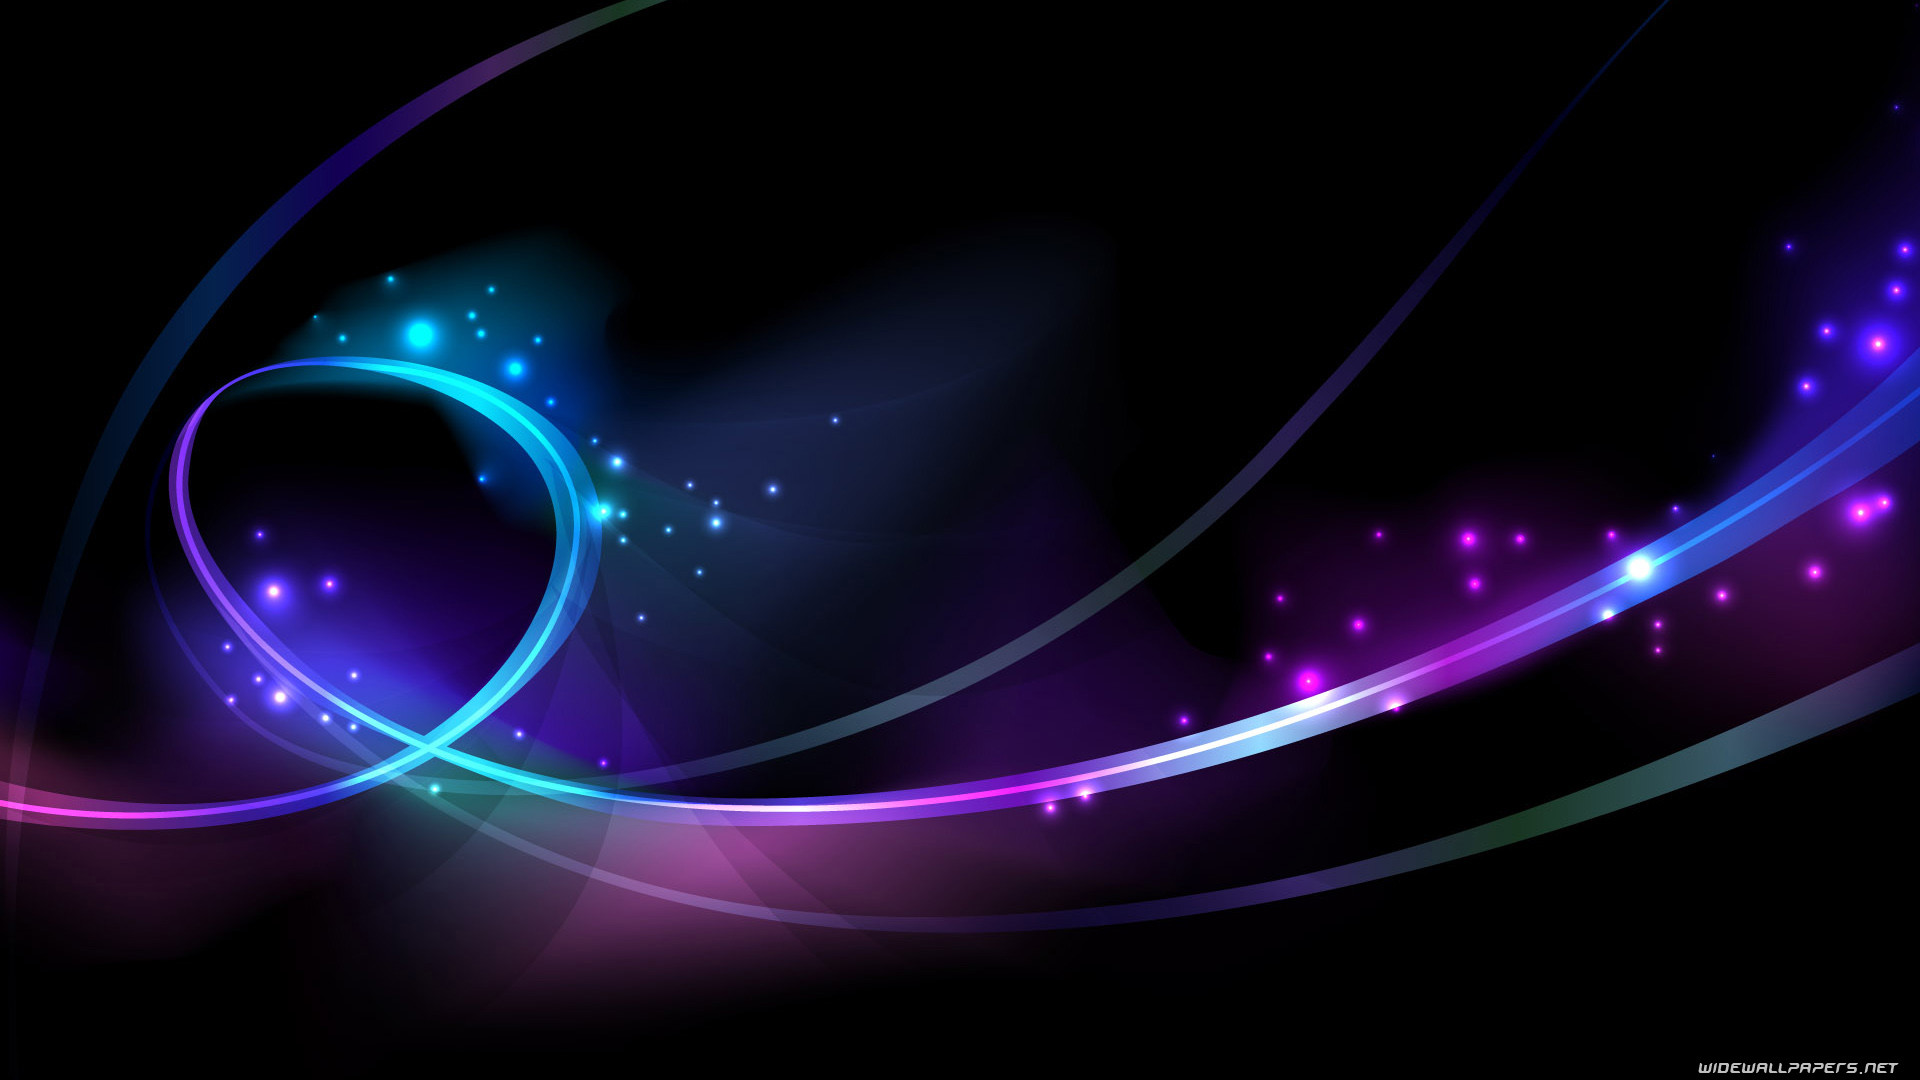 1920x1080 Free Download Dark Wallpaper Images In k For Desktop, Laptop 1920×1080 Dark  Wallpapers